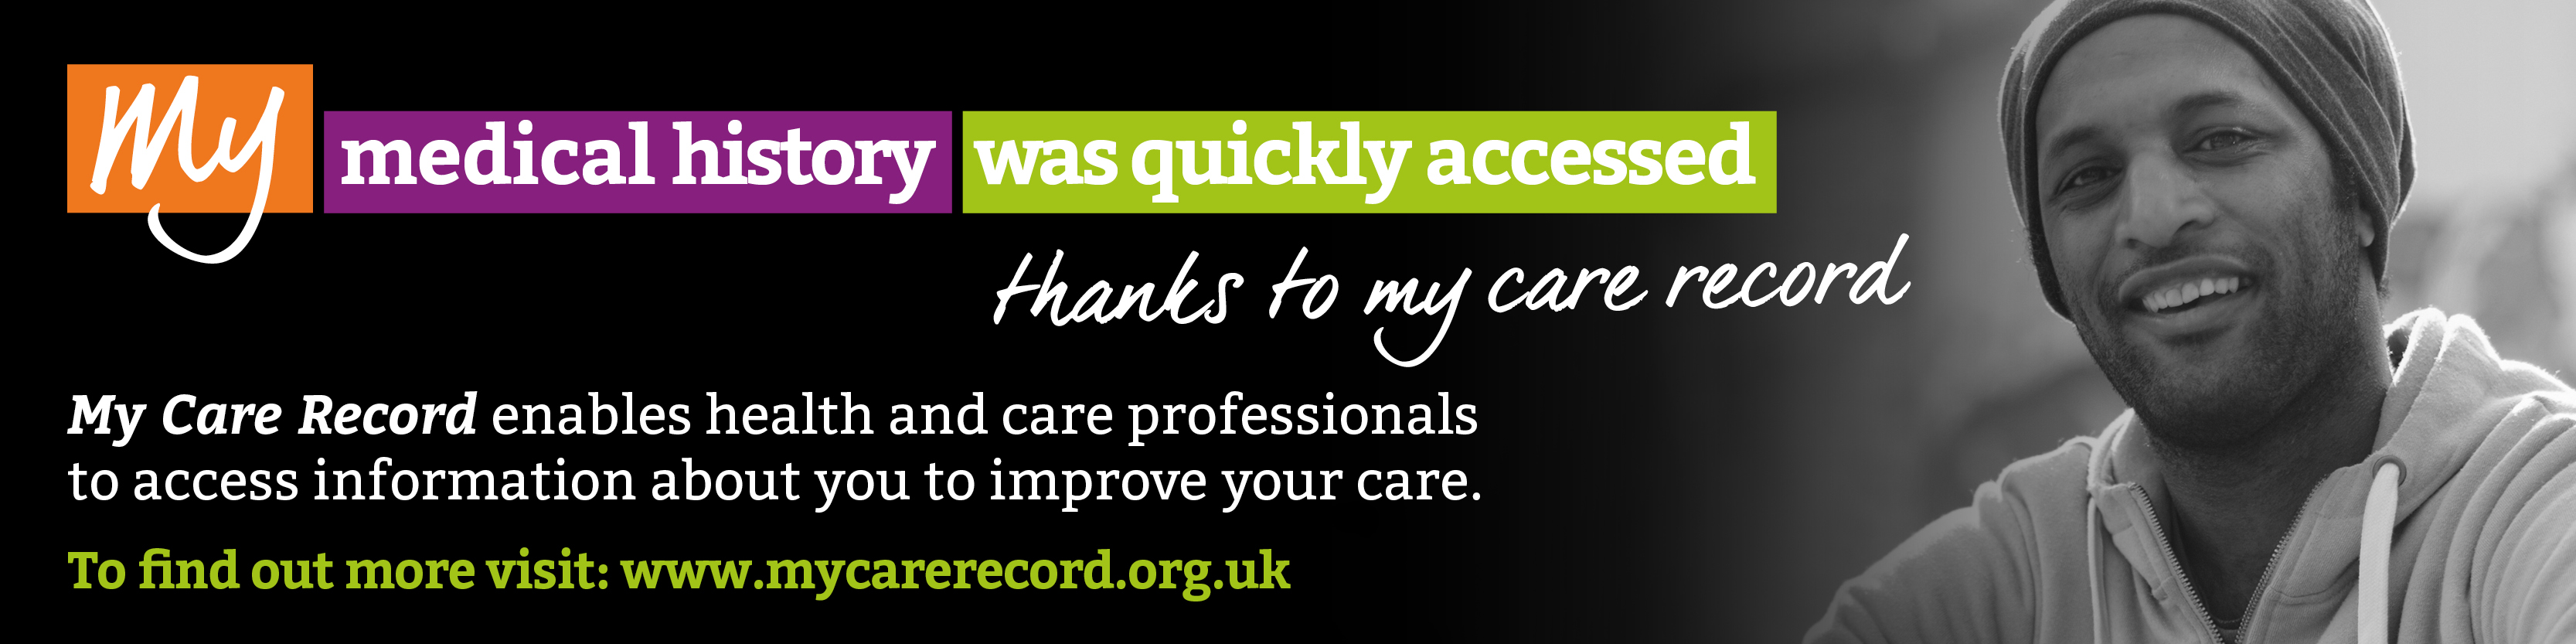 My medical history was quickly accessed thanks to my care record